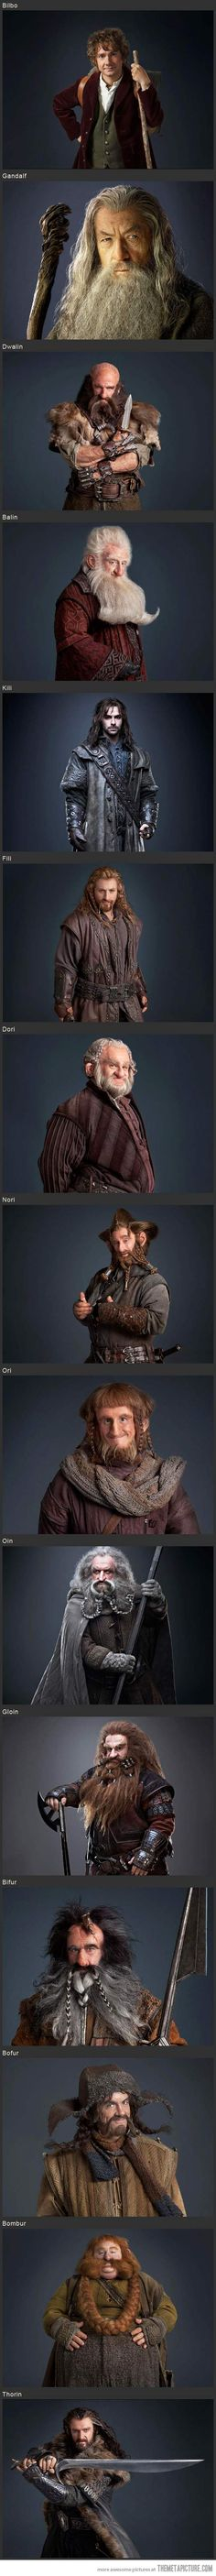 The Hobbit; Bofur has an axe in his forehead.